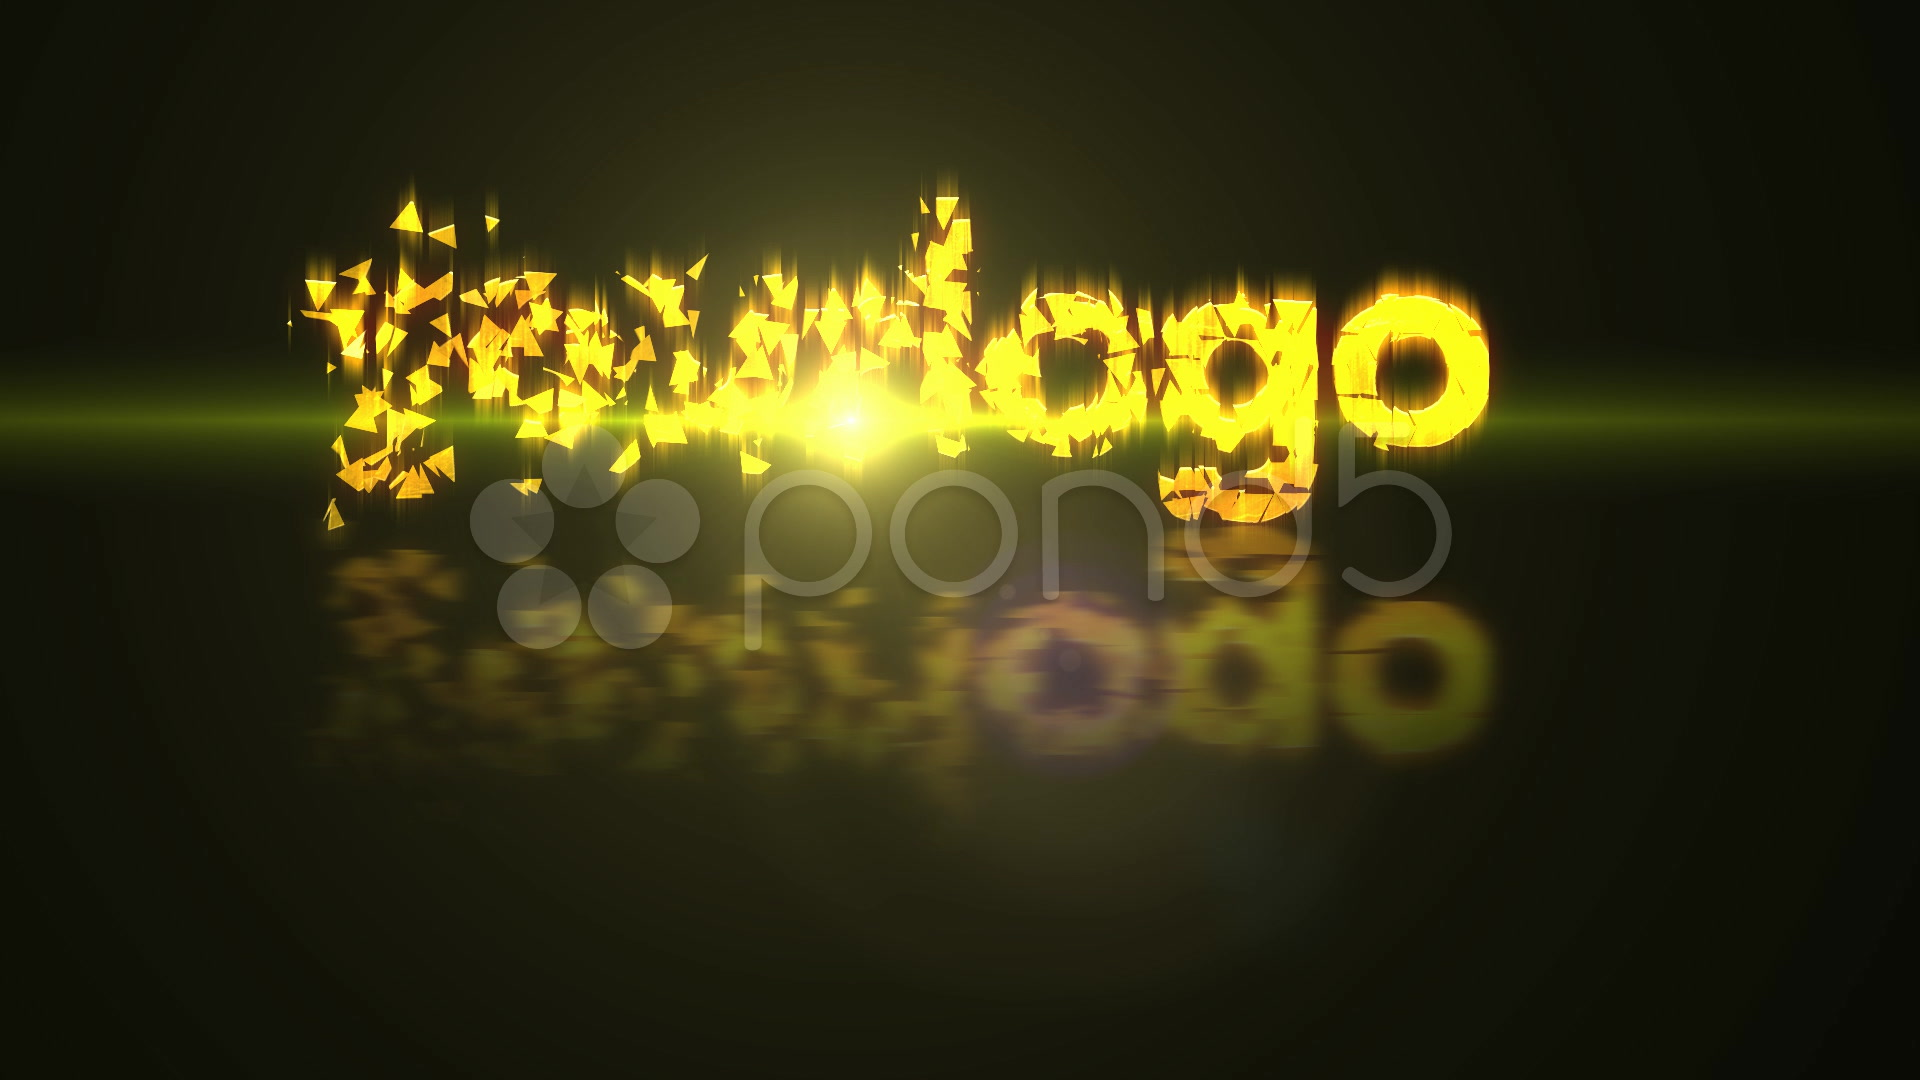 After Effects Project - Pond5 shatter text version 2 1075555